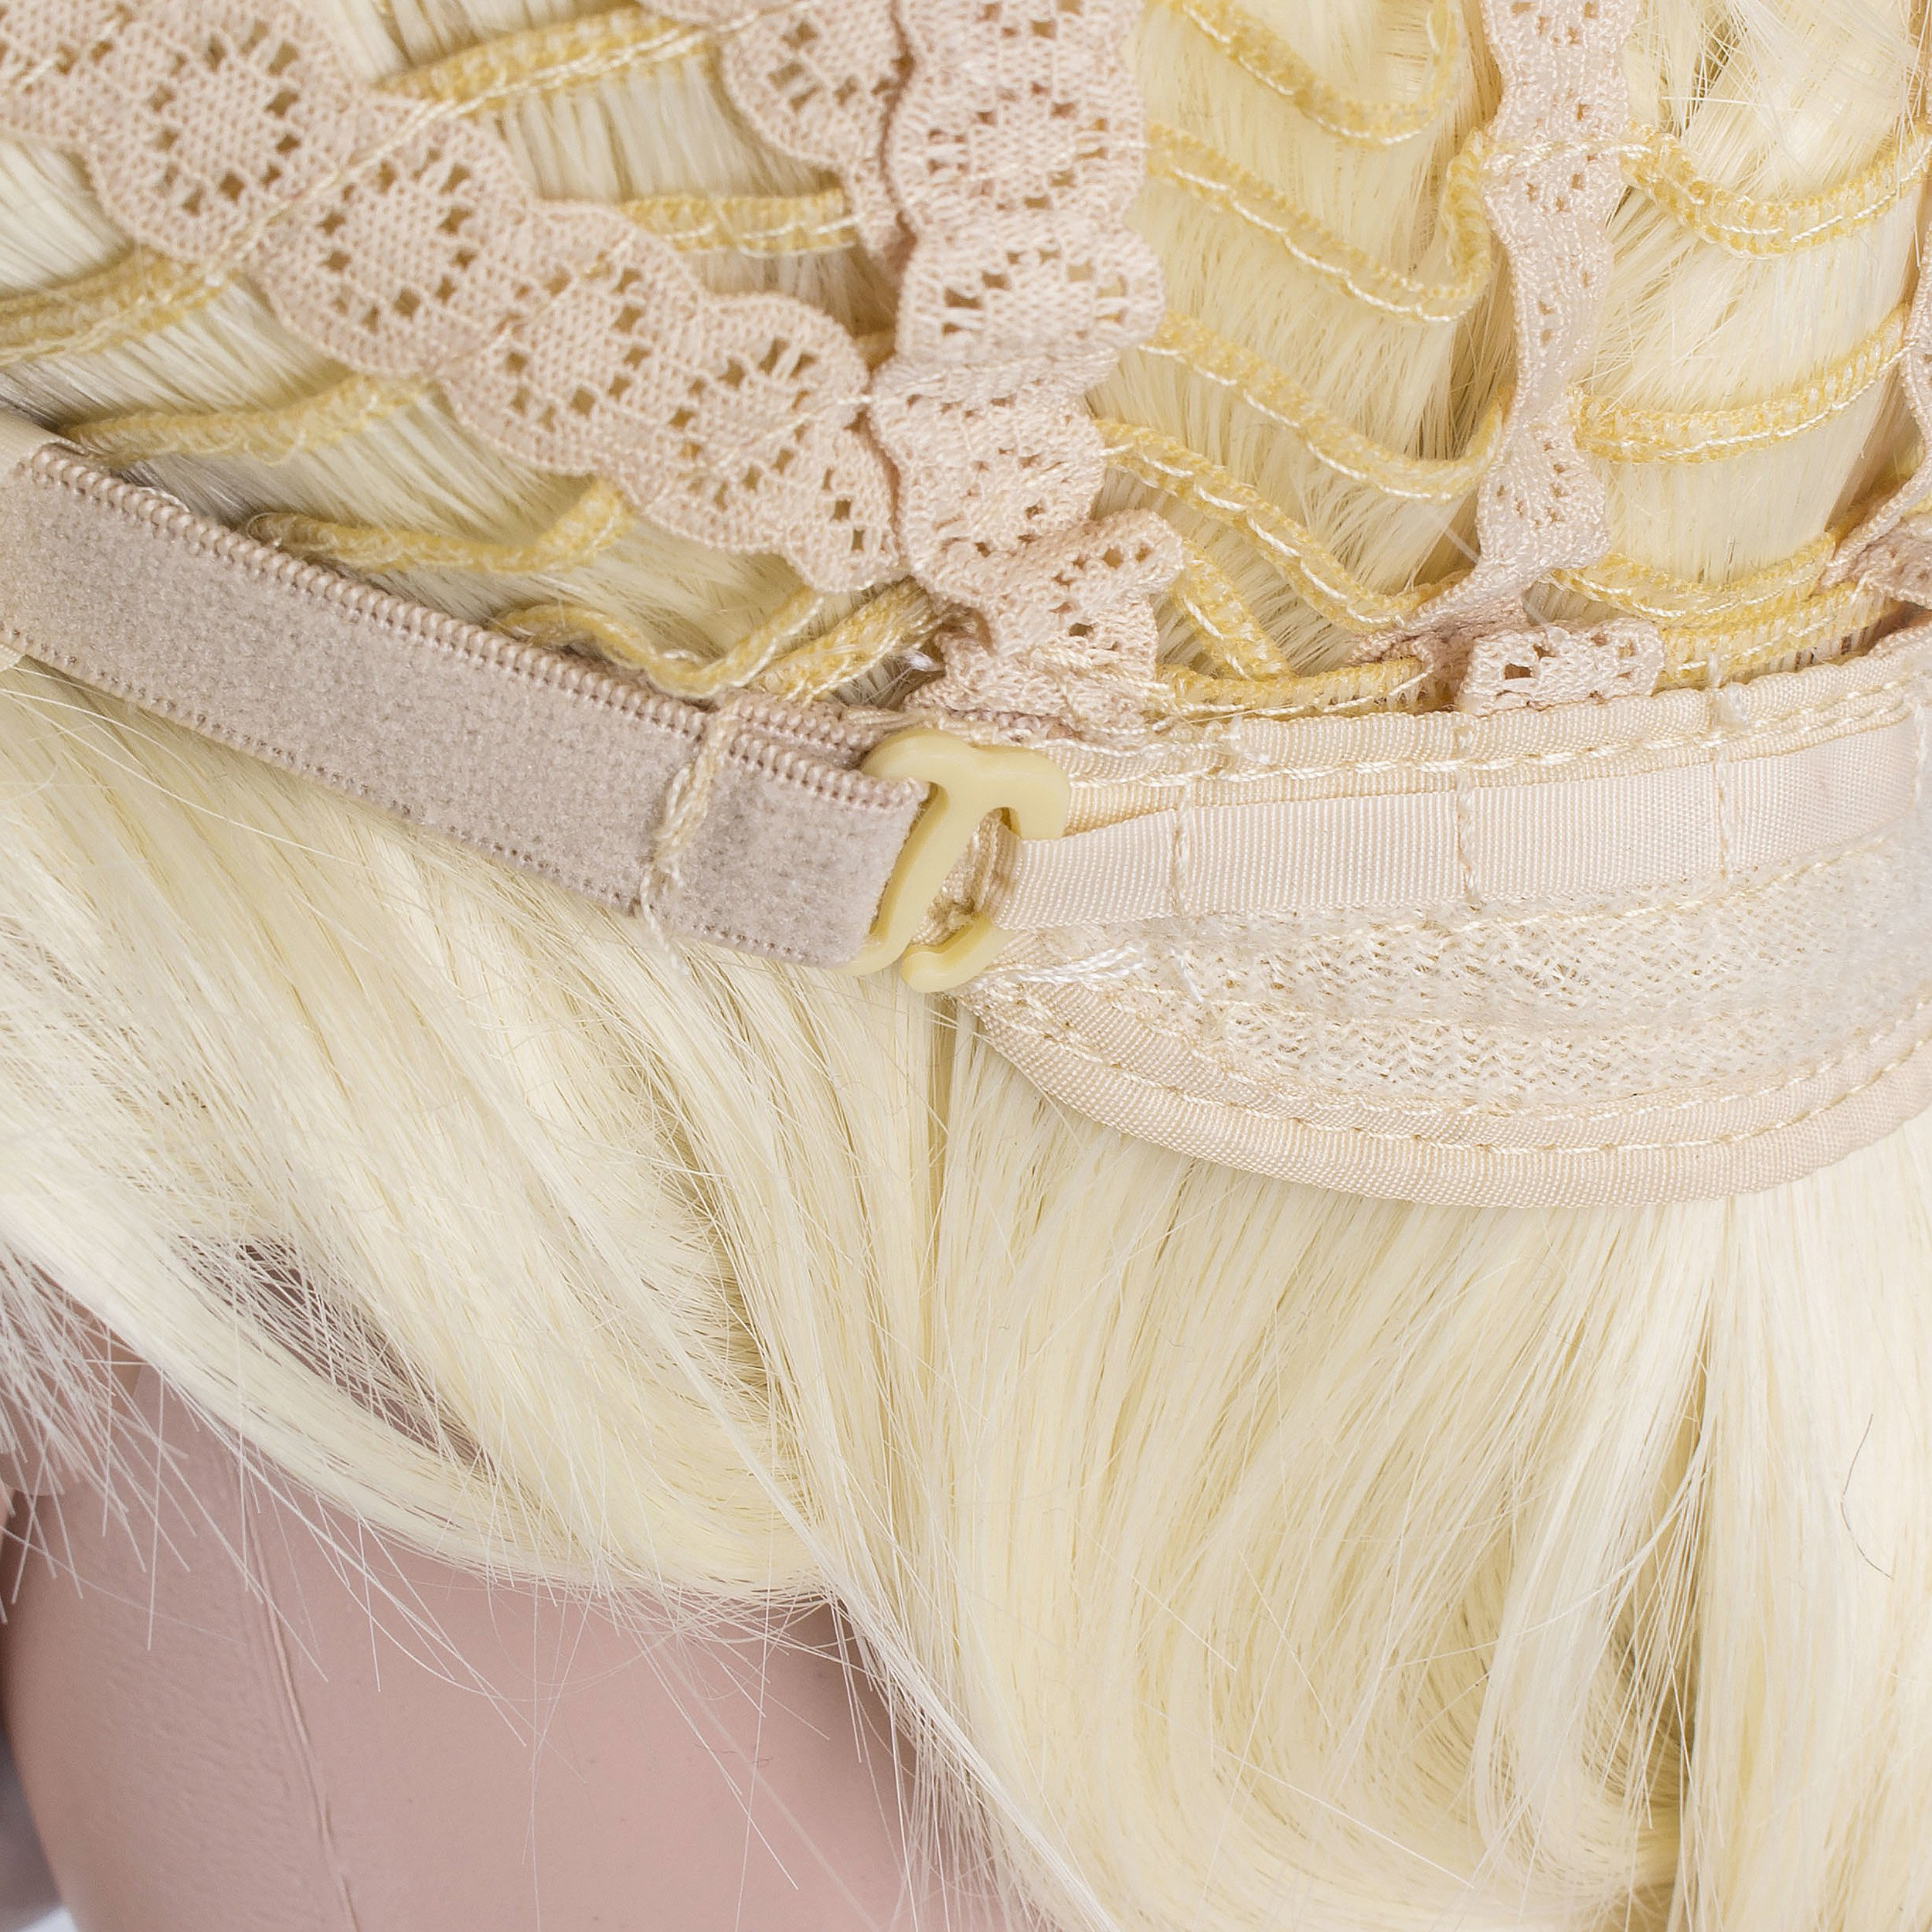 OneDor Long Braided Ponytail Cosplay Costume Light Blonde Wig by Onedor (Image #6)